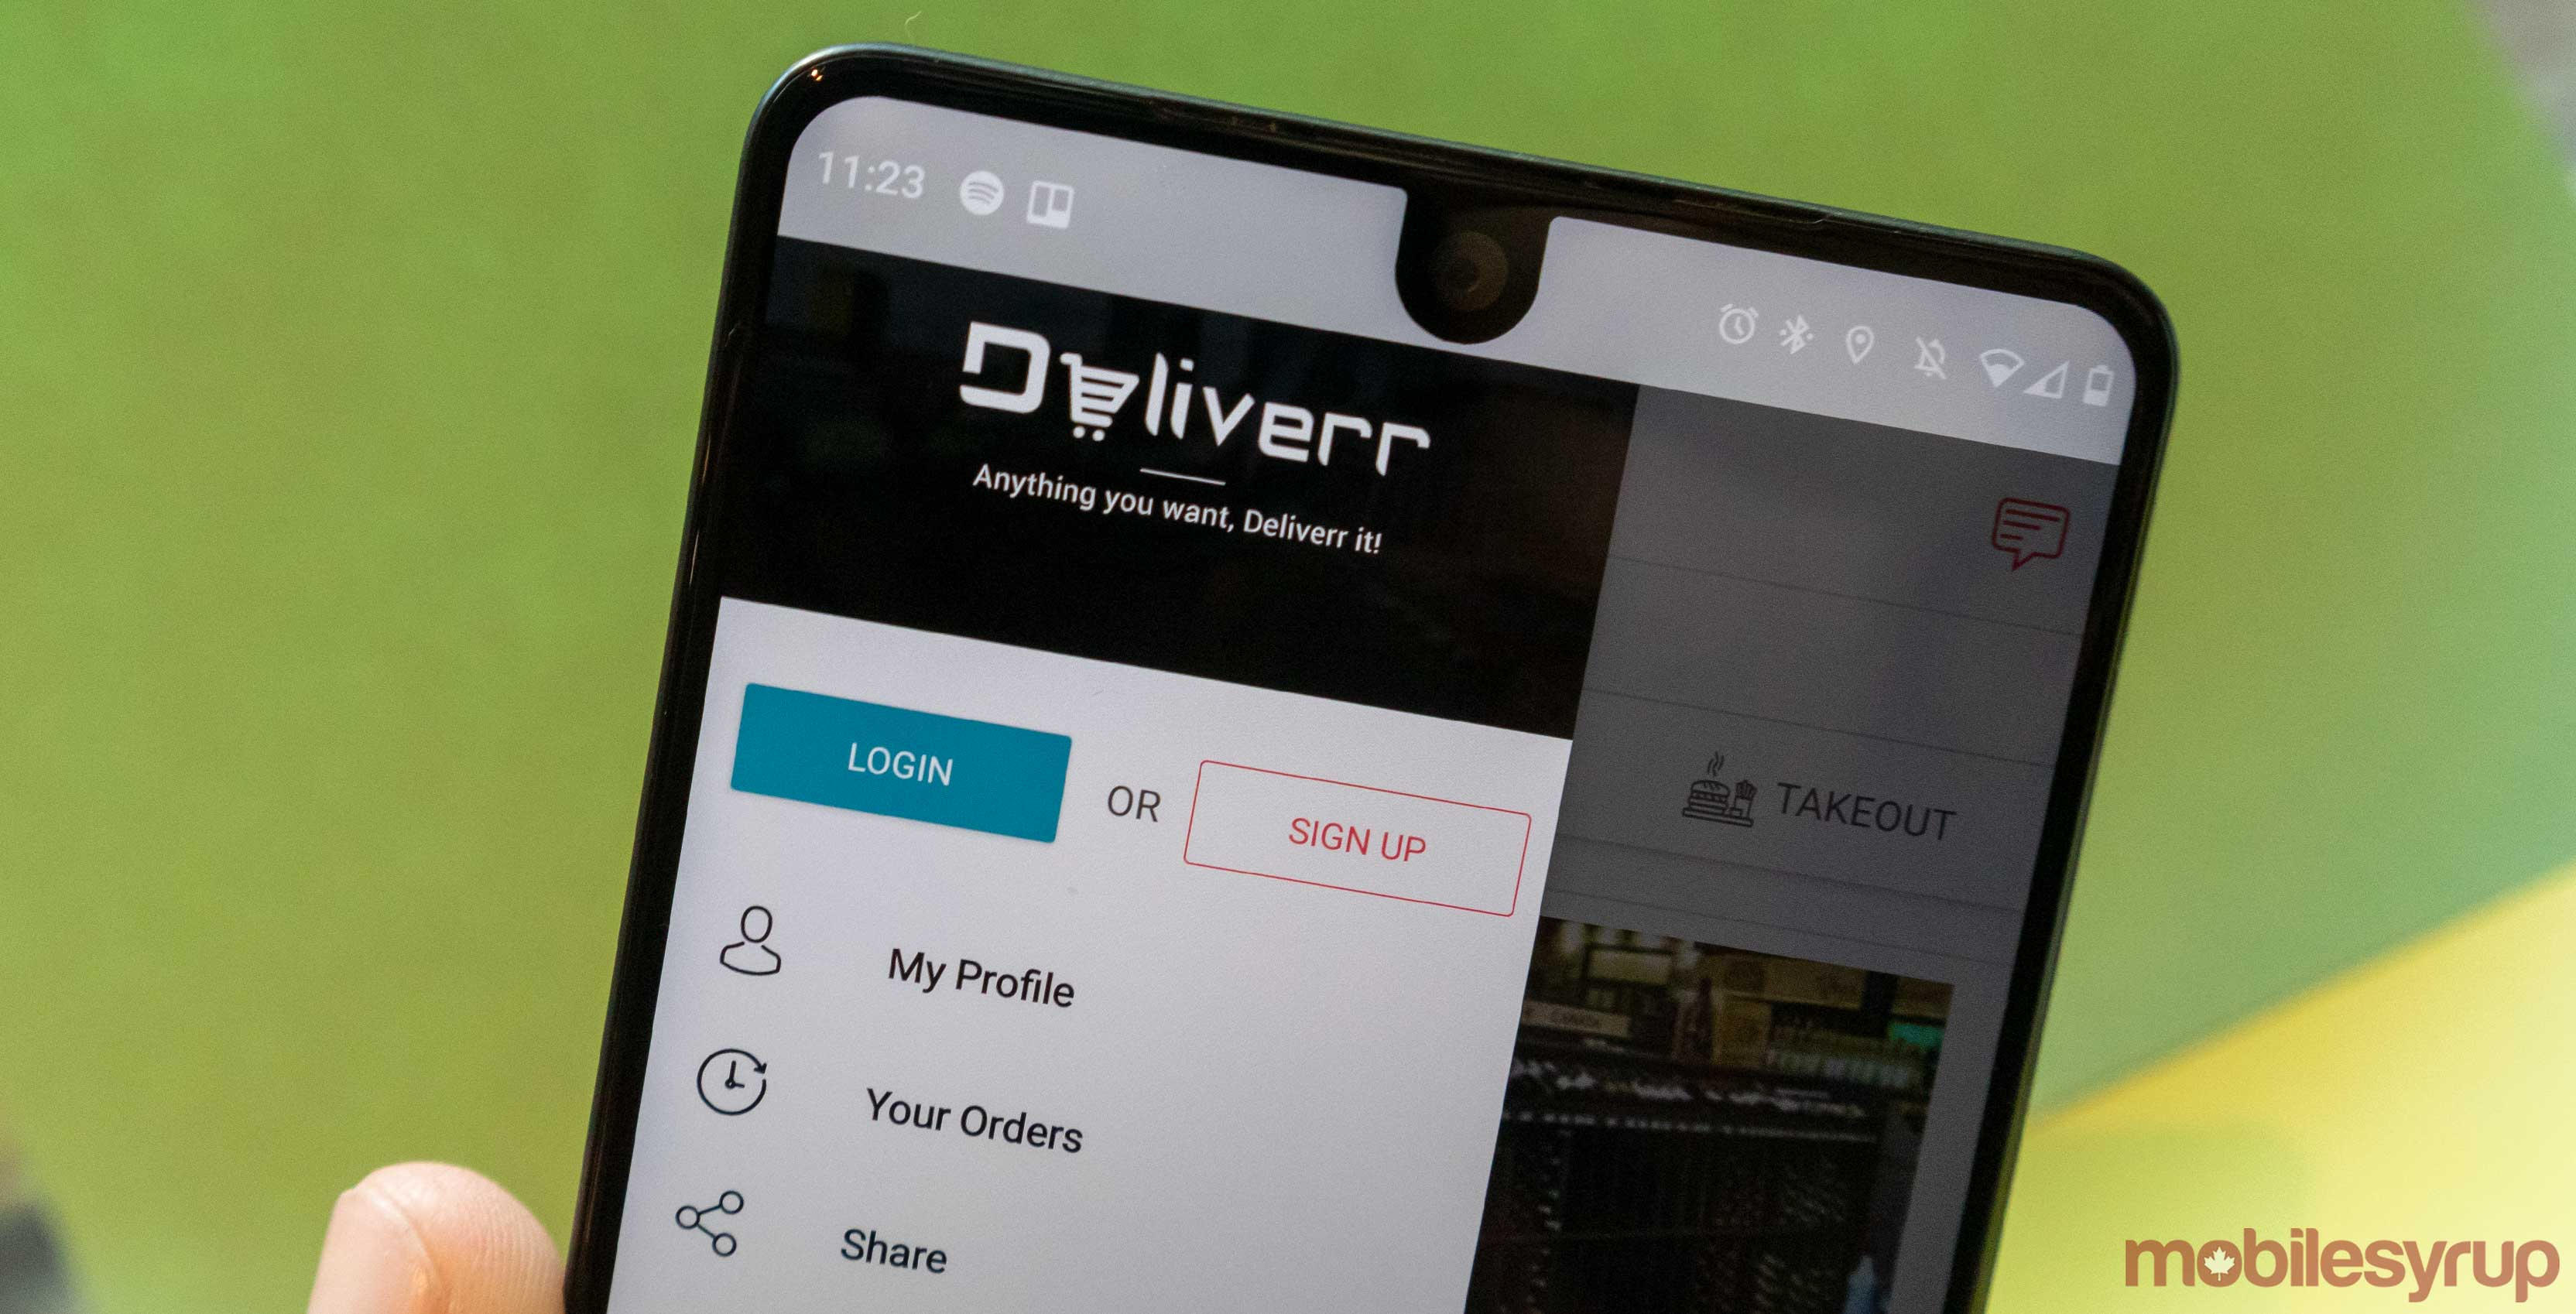 Deliverr brings its same-day 'daily item' delivery service to Calgary